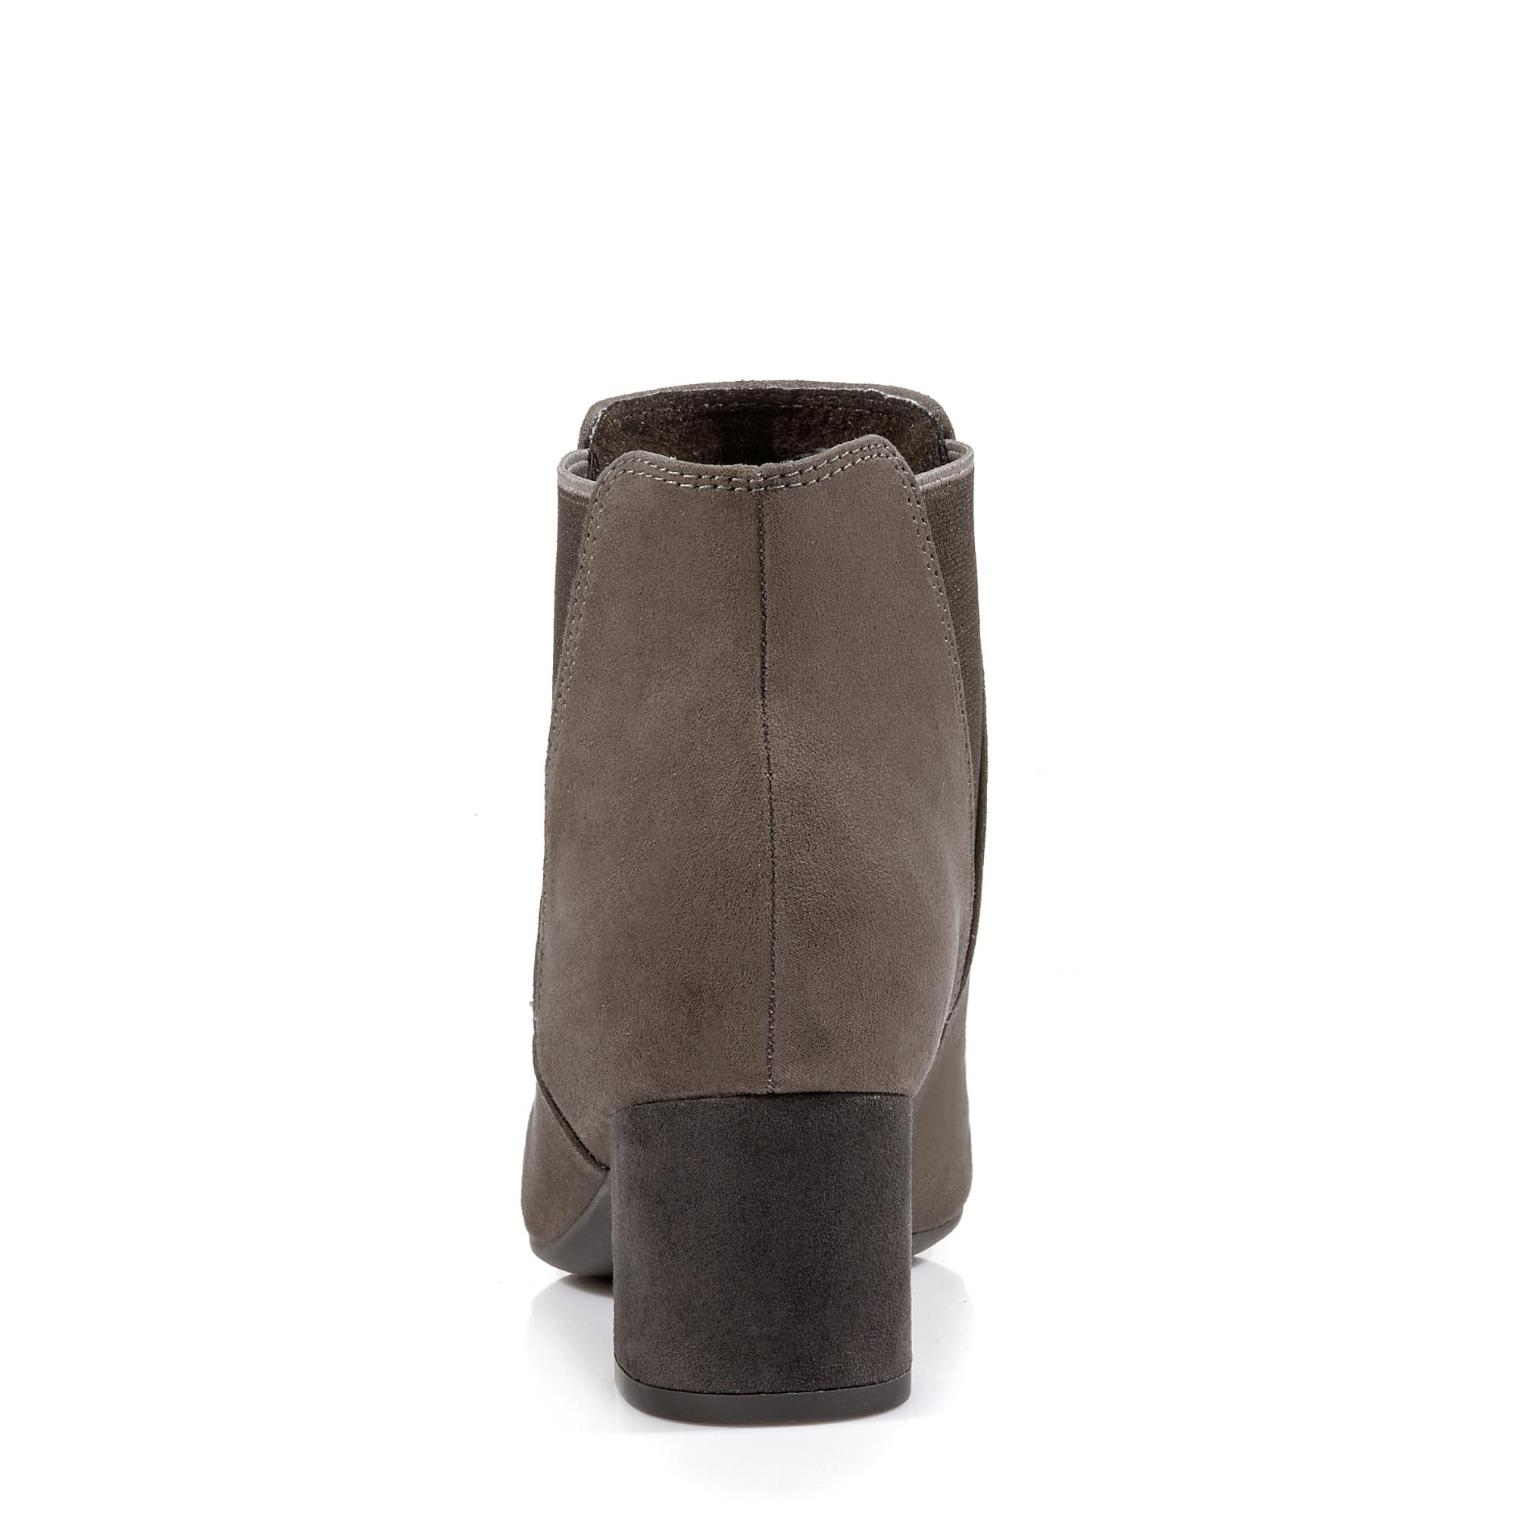 Marco Tozzi Peri Chelsea Stiefelette in Farbe taupe taupe taupe um 49% reduziert online kaufen 31478f